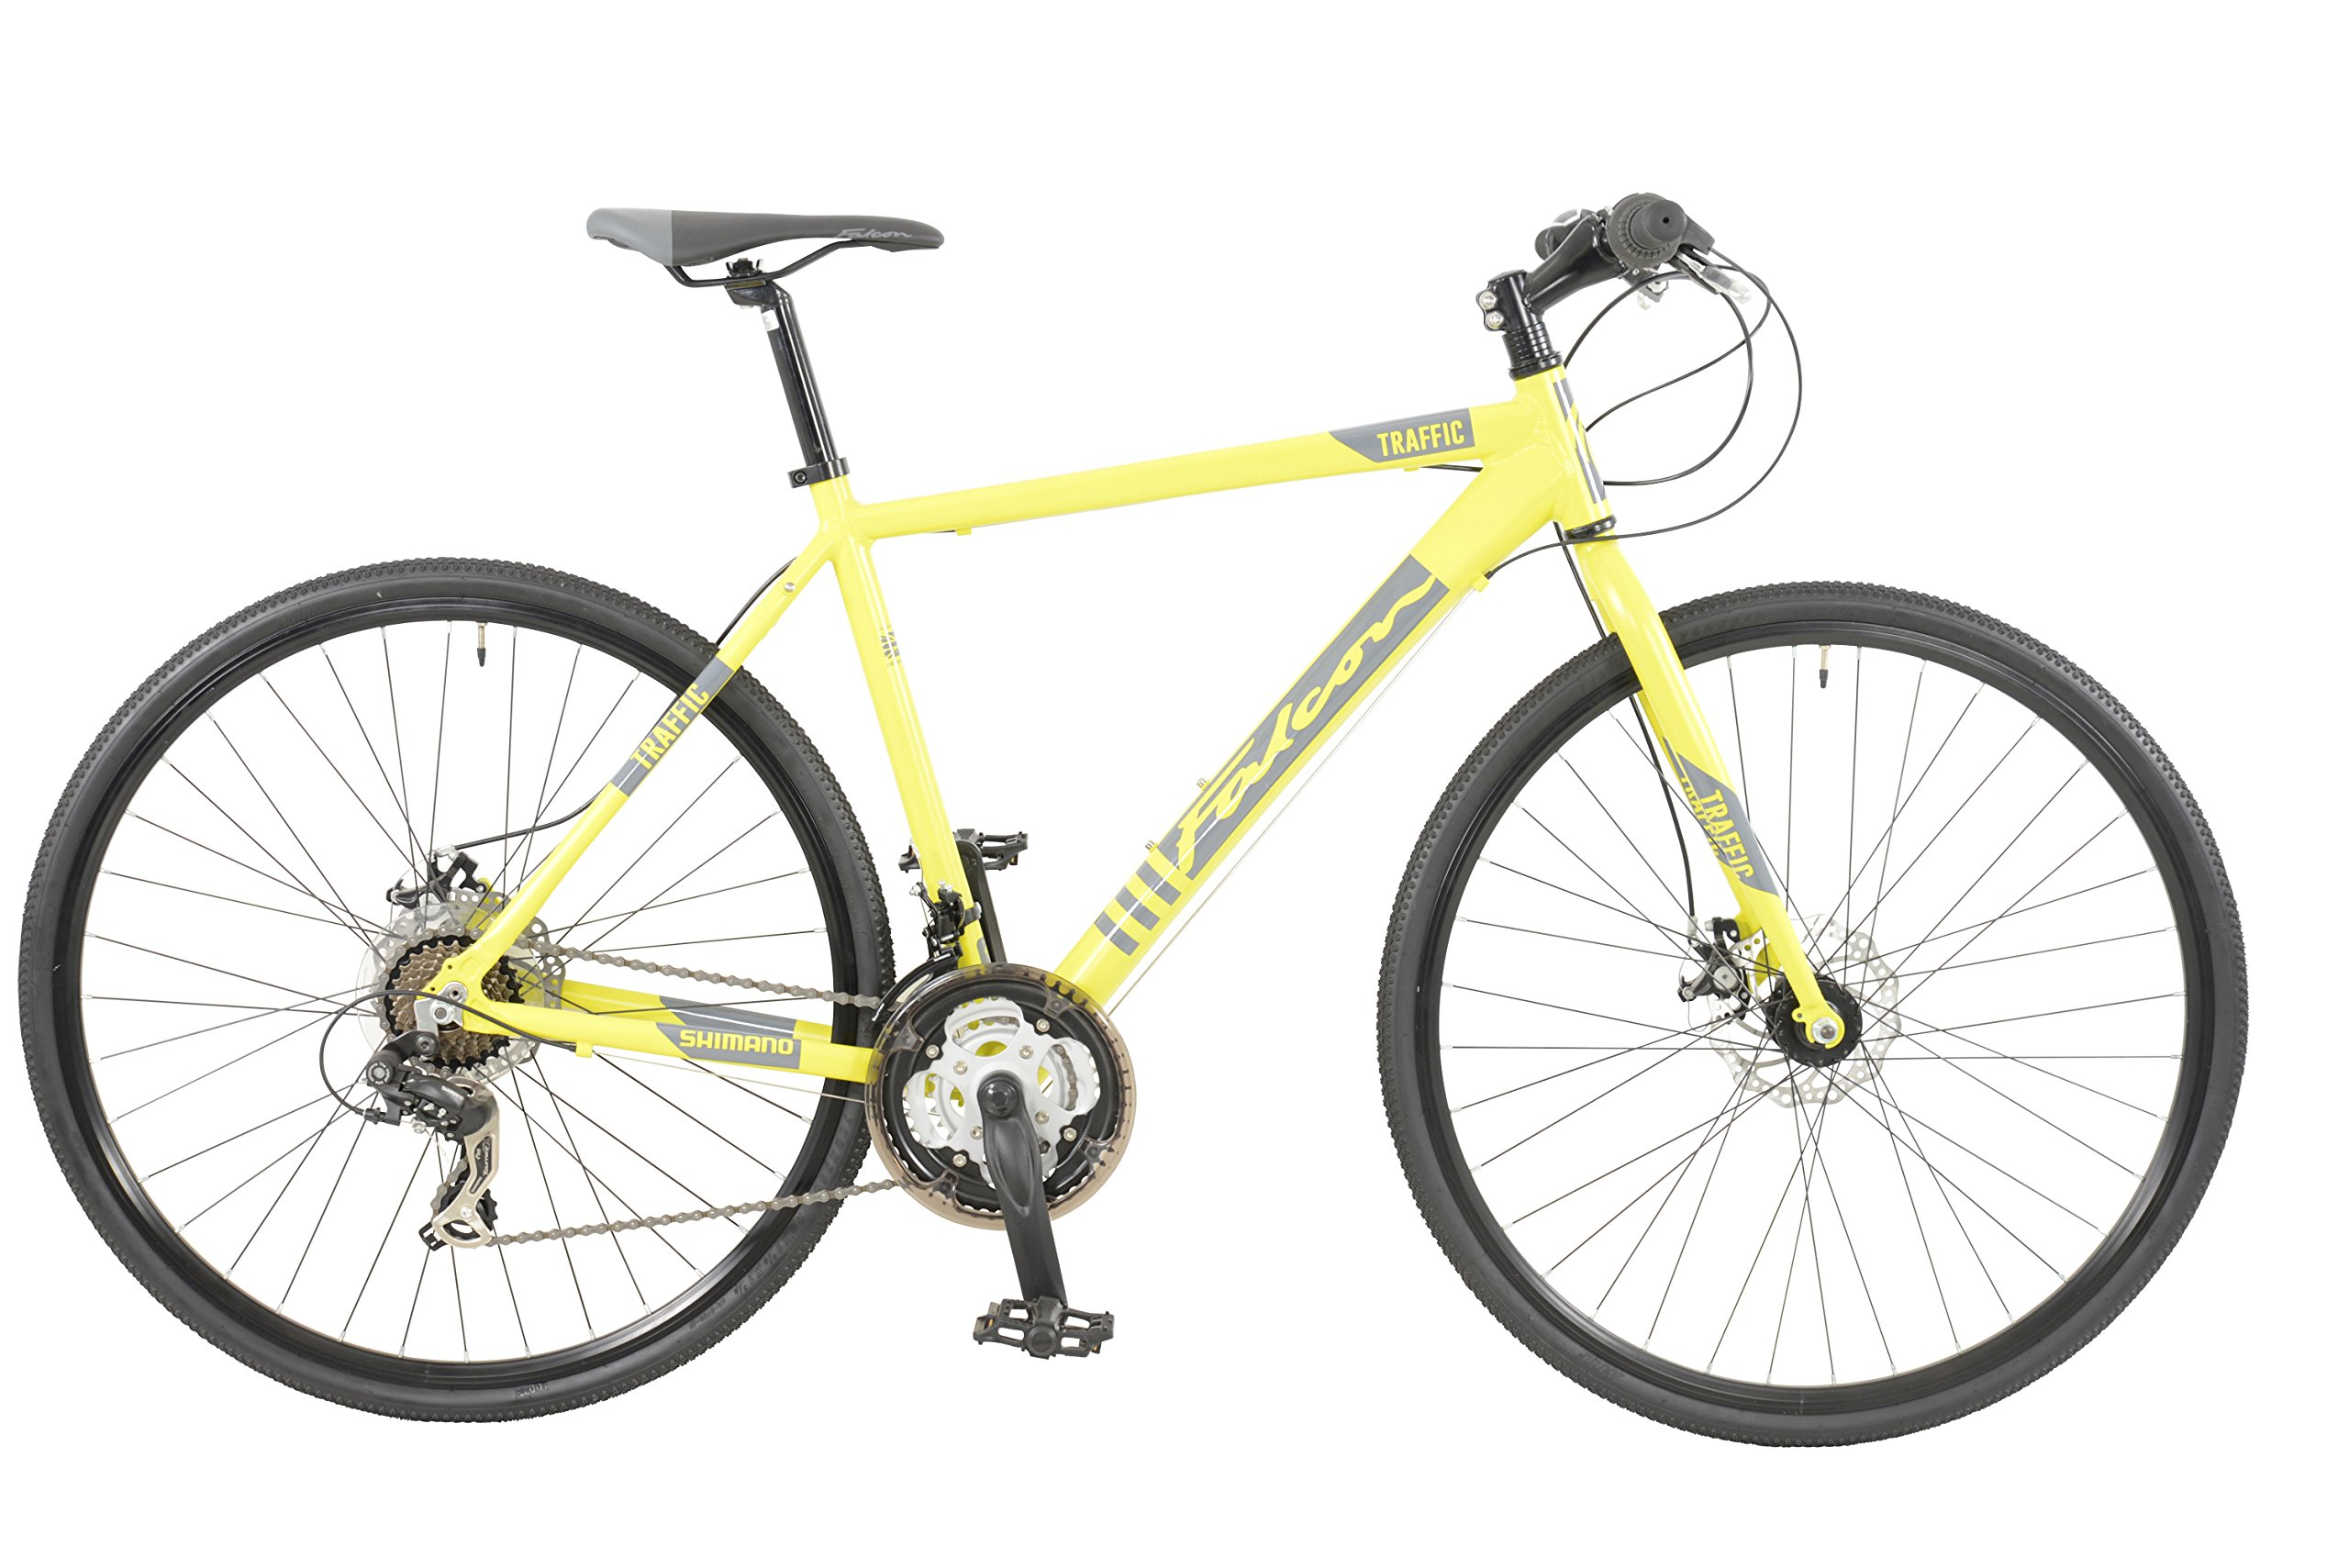 Falcon Traffic Mens' Mountain Bike Yellow, 19'' inch aluminium frame, 21-speed rigid straight blade fork larger 700c tyres by Falcon